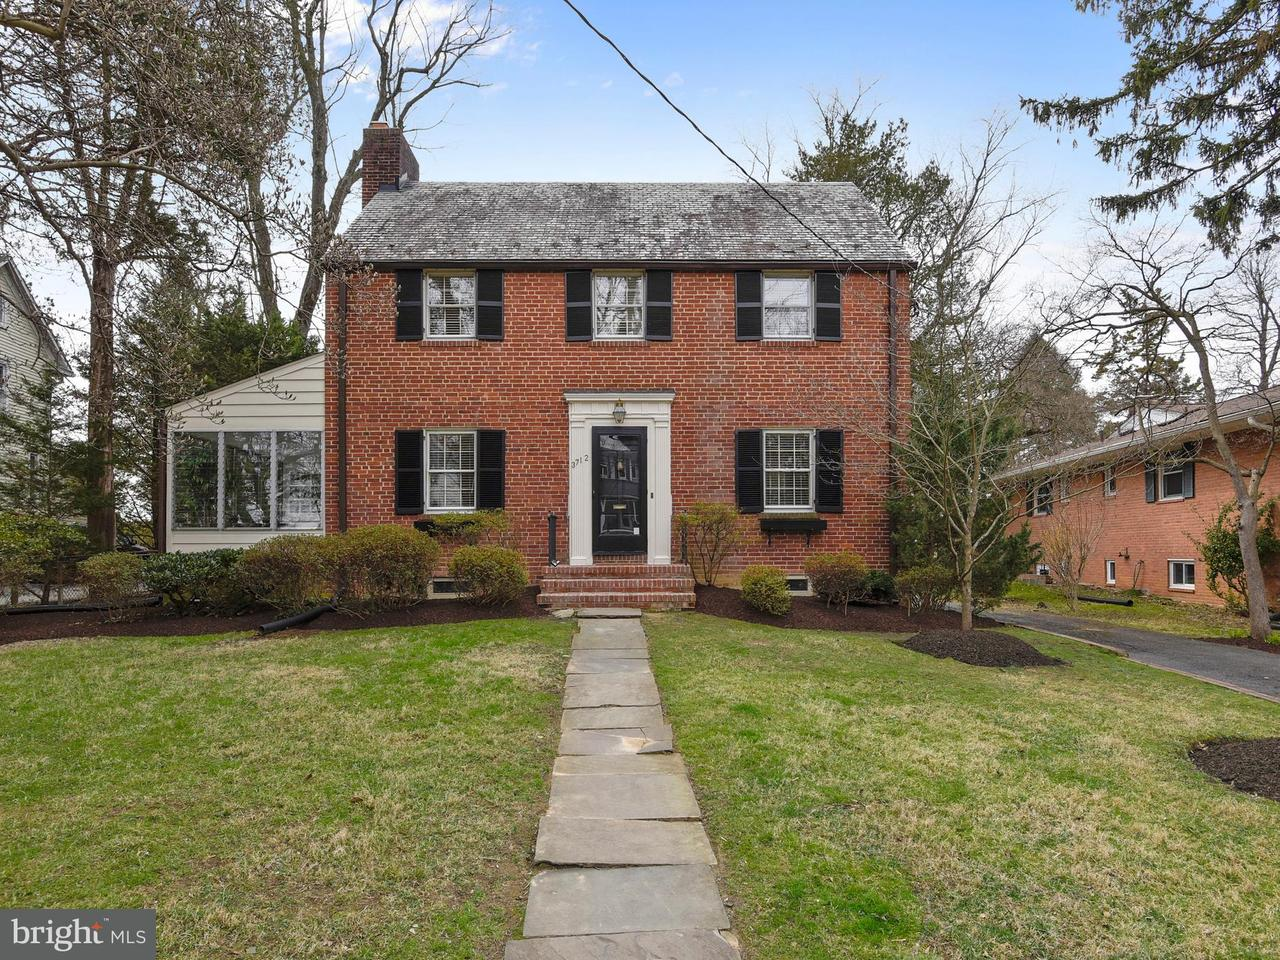 3712 kenilworth driveway chevy chase md 20815 mls - Maison ecologique maryland chavy chase ...